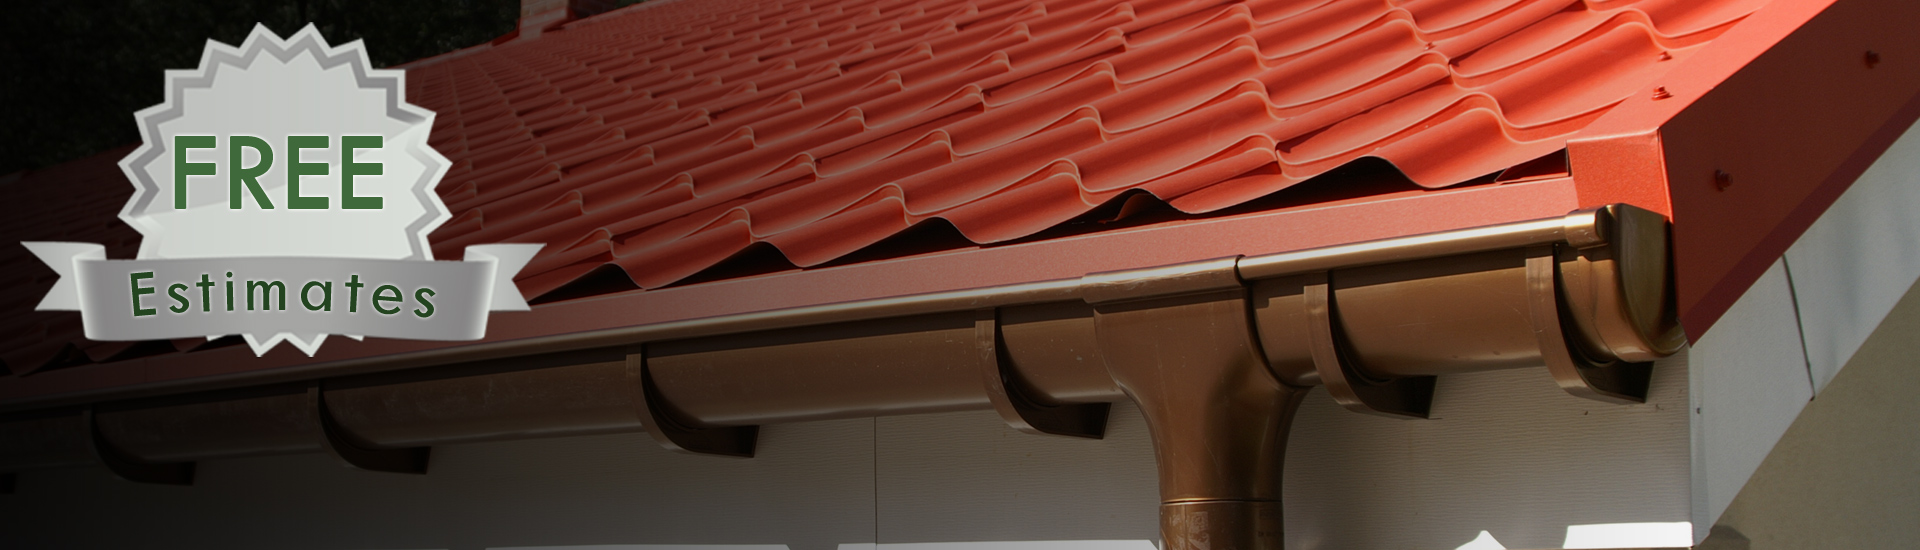 Gutter System on Roof